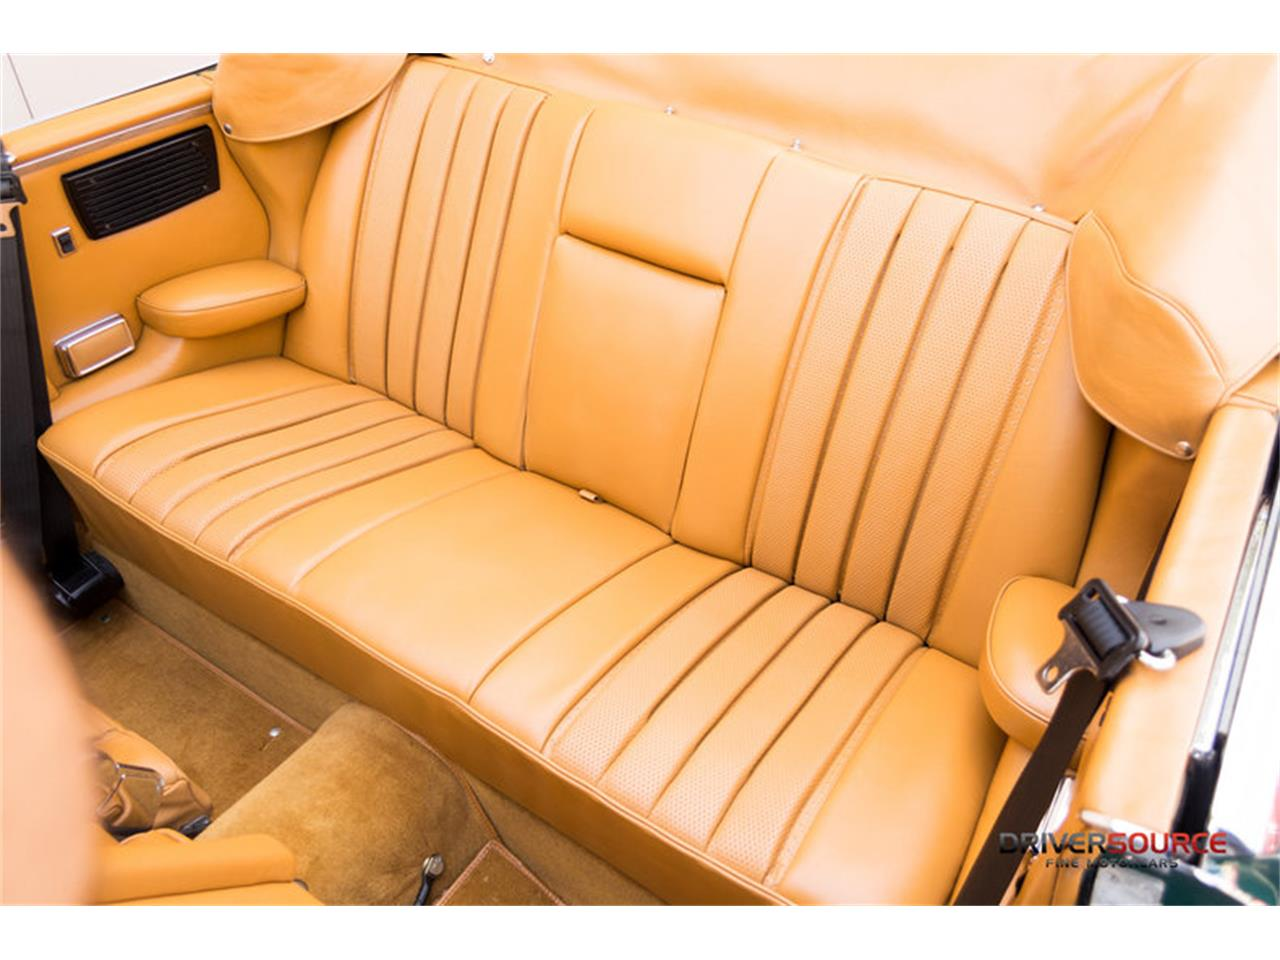 Large Picture of Classic 1971 280SE Offered by Driversource - LAC0